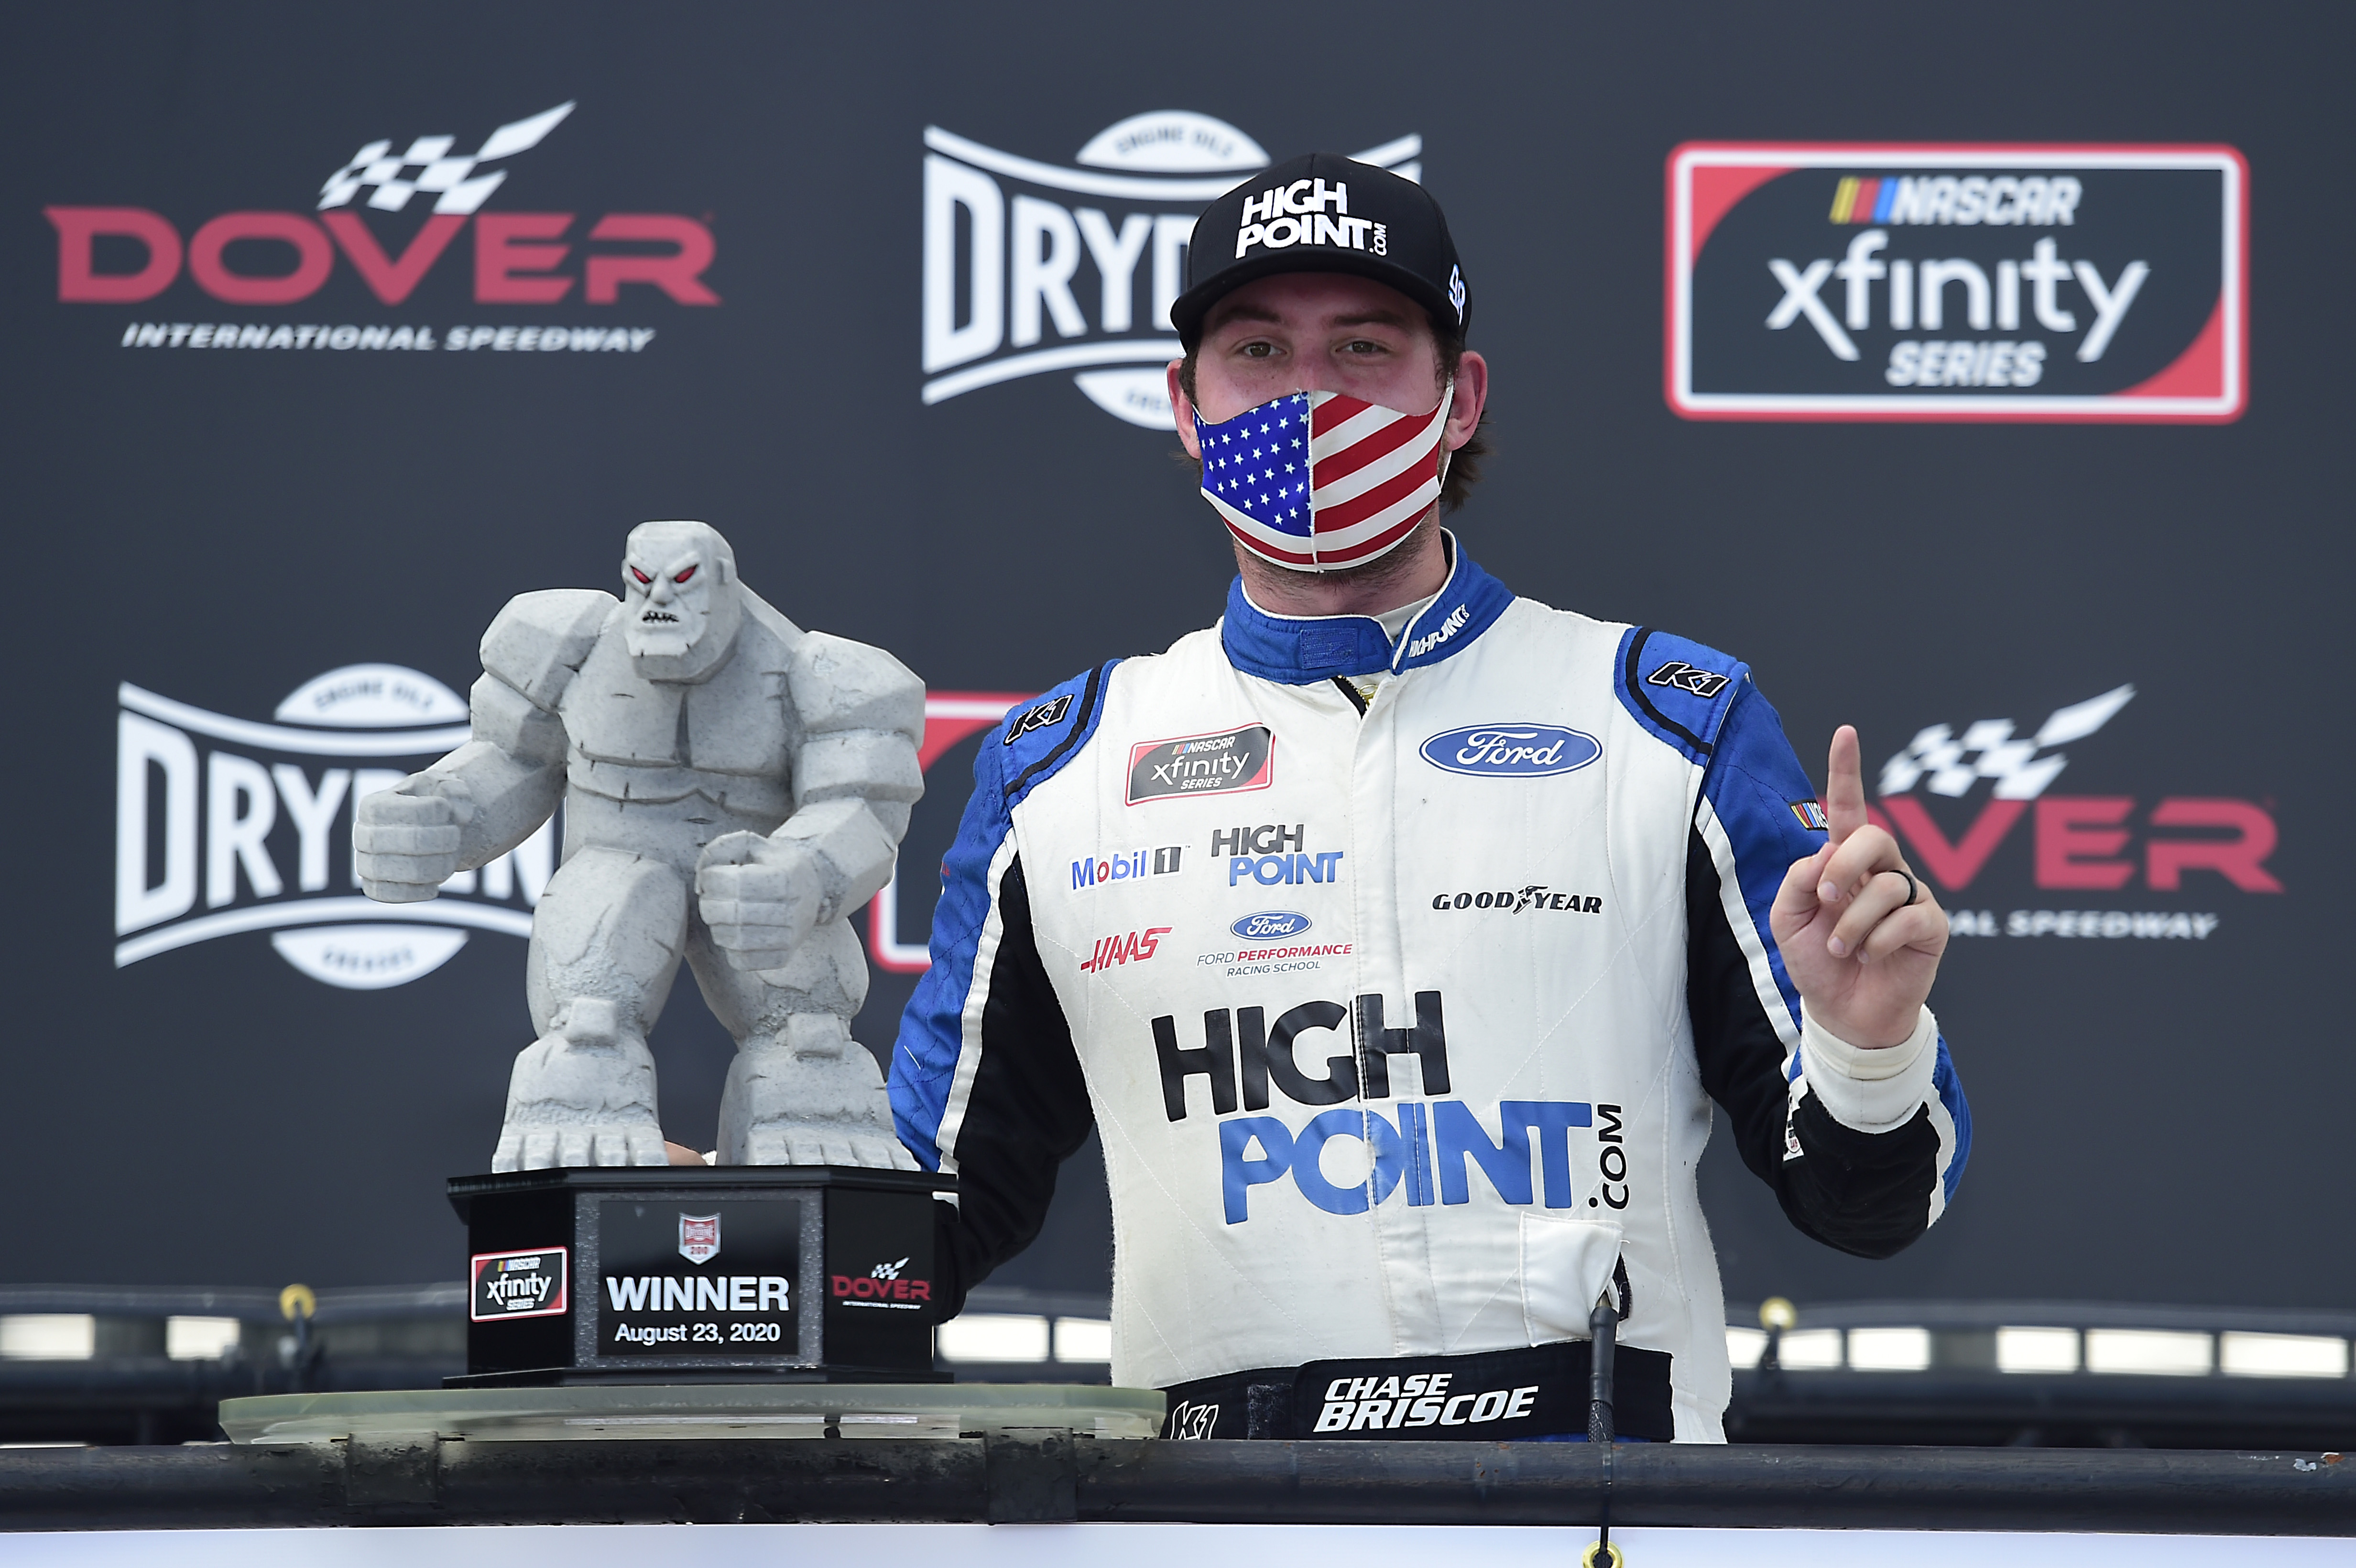 Highpoint.com Ford driver Chase Briscoe celebrates in Victory Lane after winning the NASCAR Xfinity Series Drydene 200